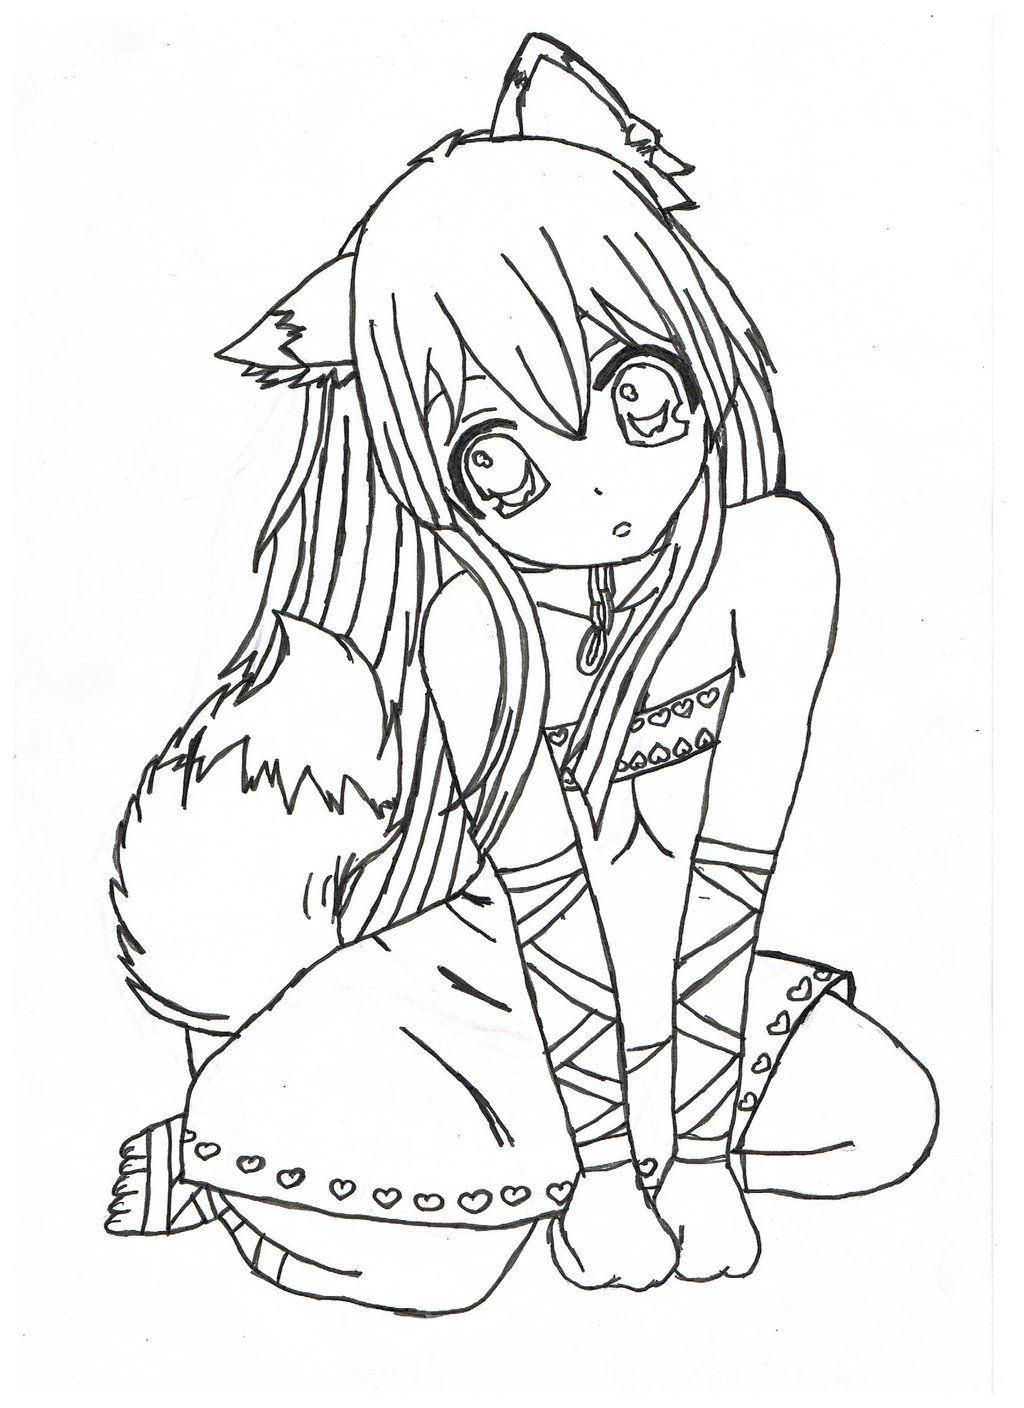 38 Coloring Sheets For Girls In 2020 Fox Coloring Page Cute Coloring Pages Coloring Pages For Girls